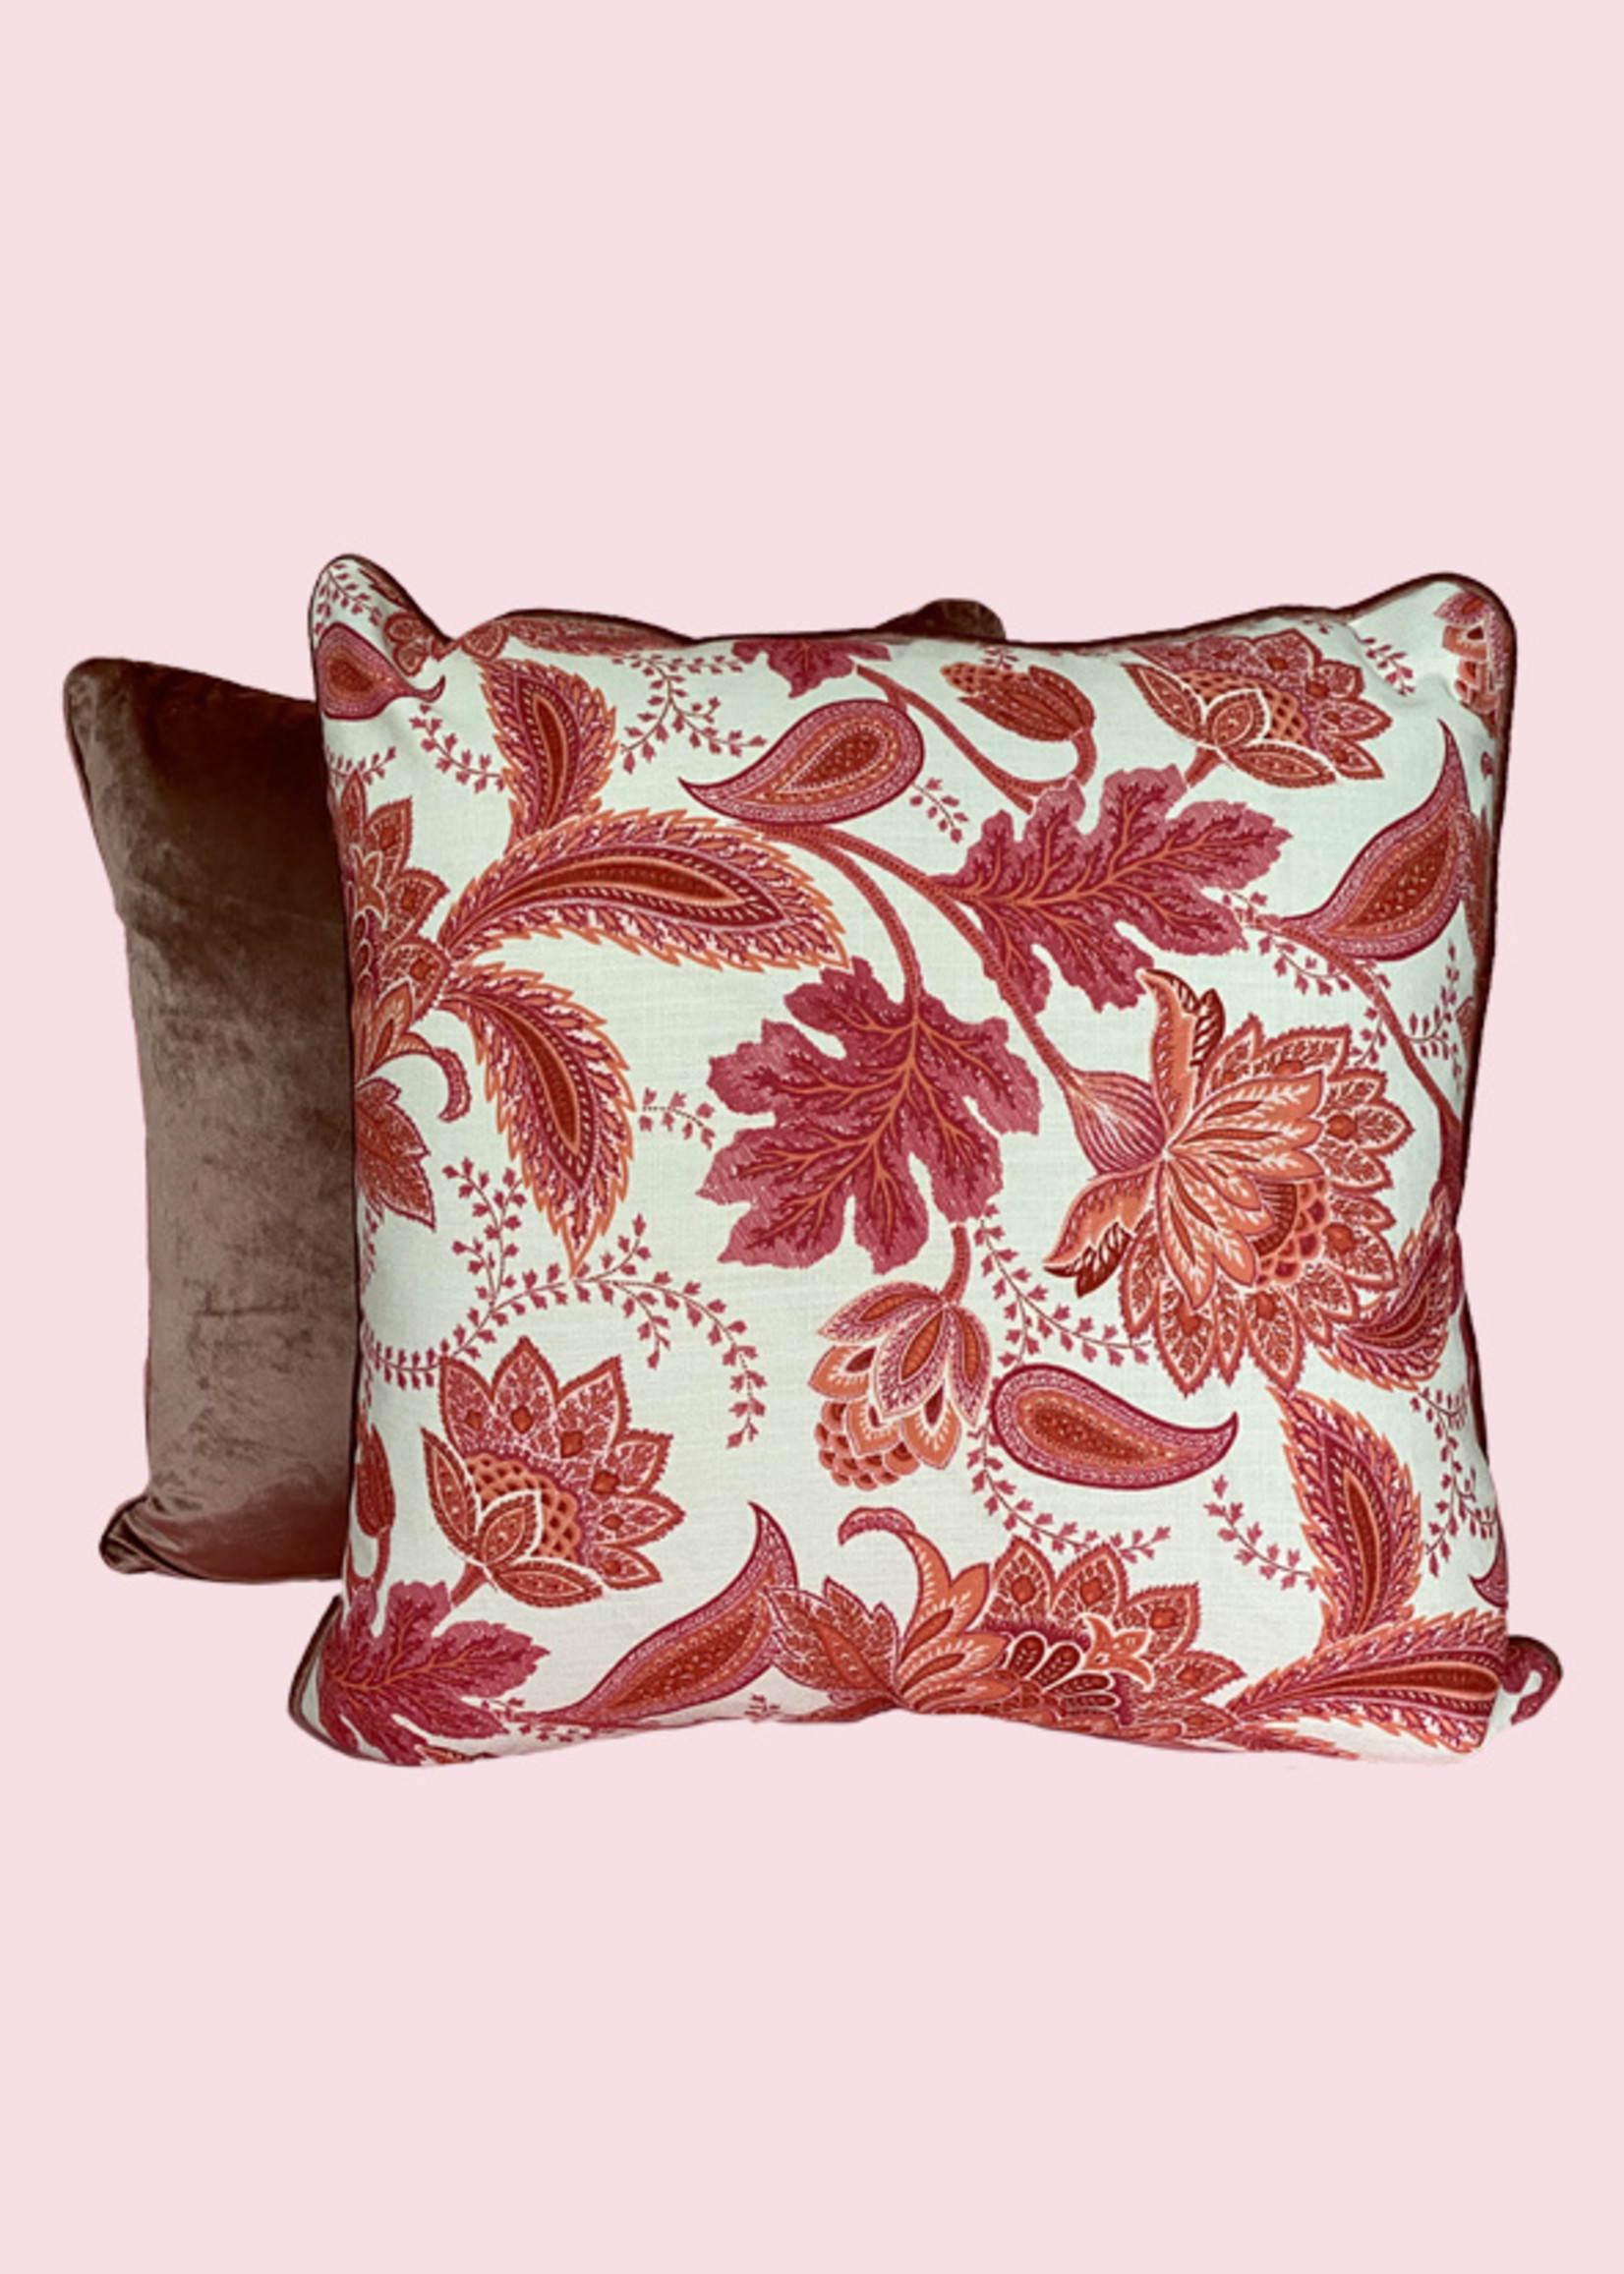 Esther's Paradise Room's pillows